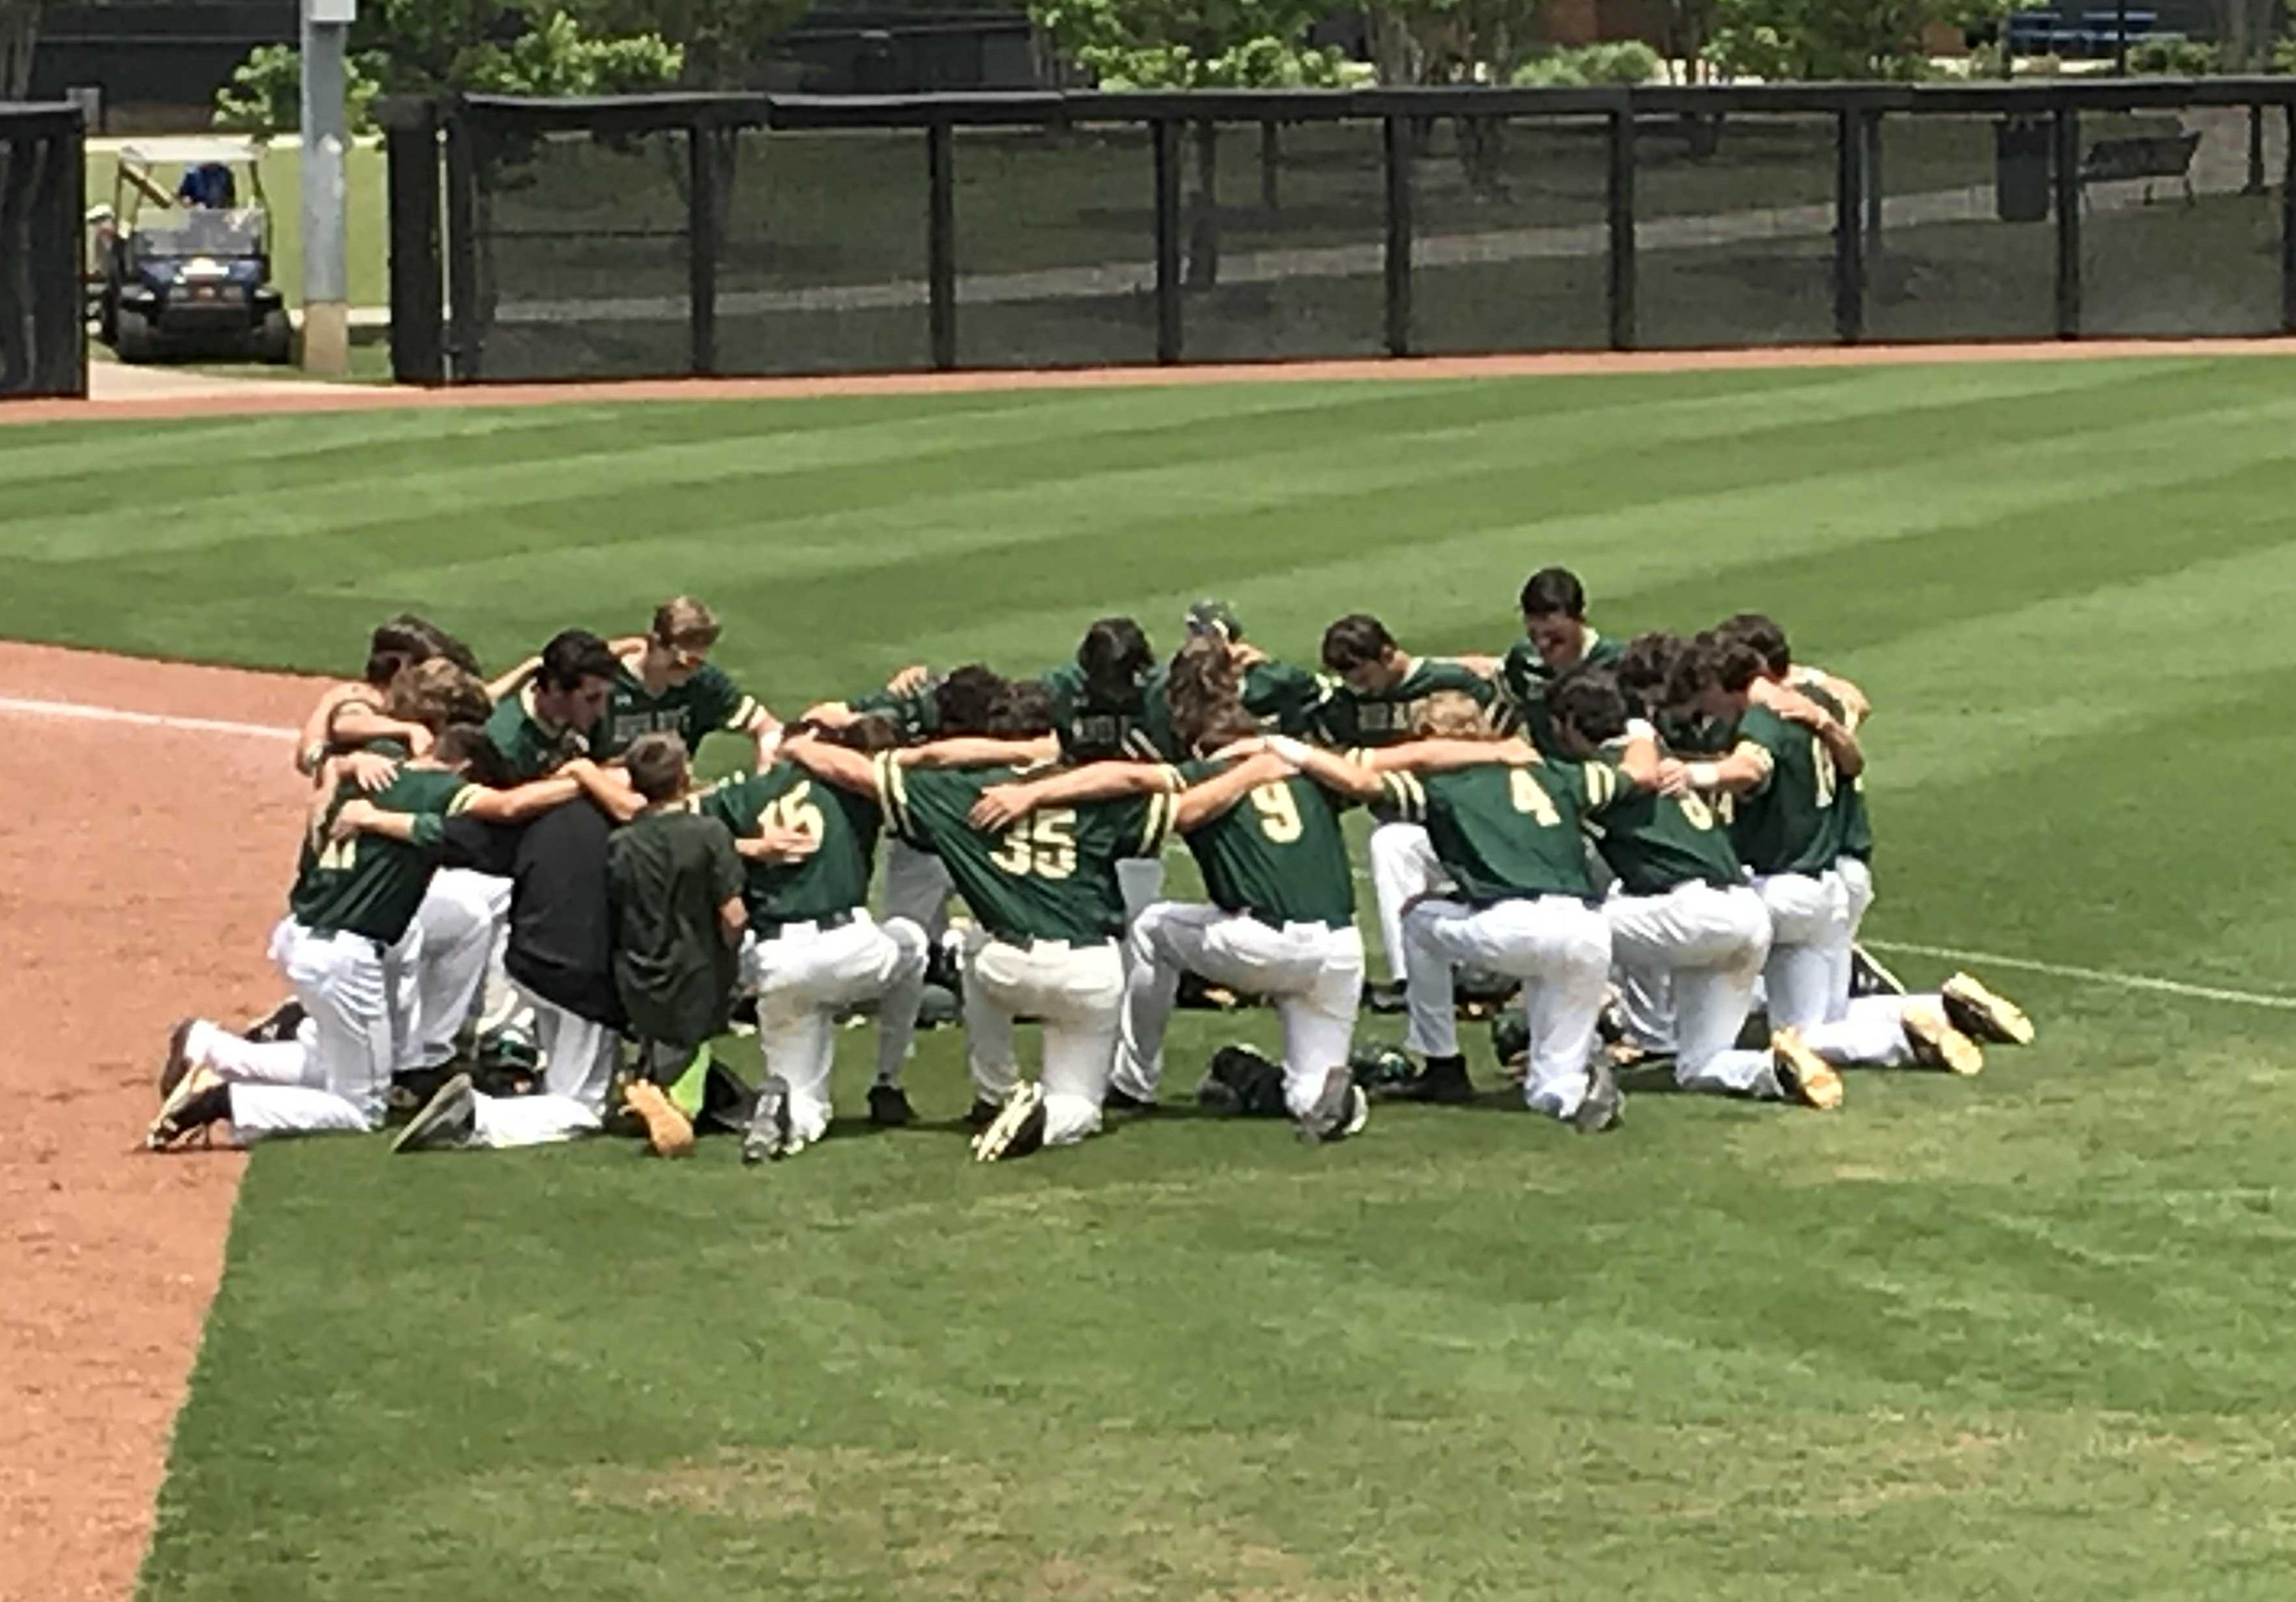 Gators vs Cavaliers in Deciding Game 3 of Baseball State Championship About to Start